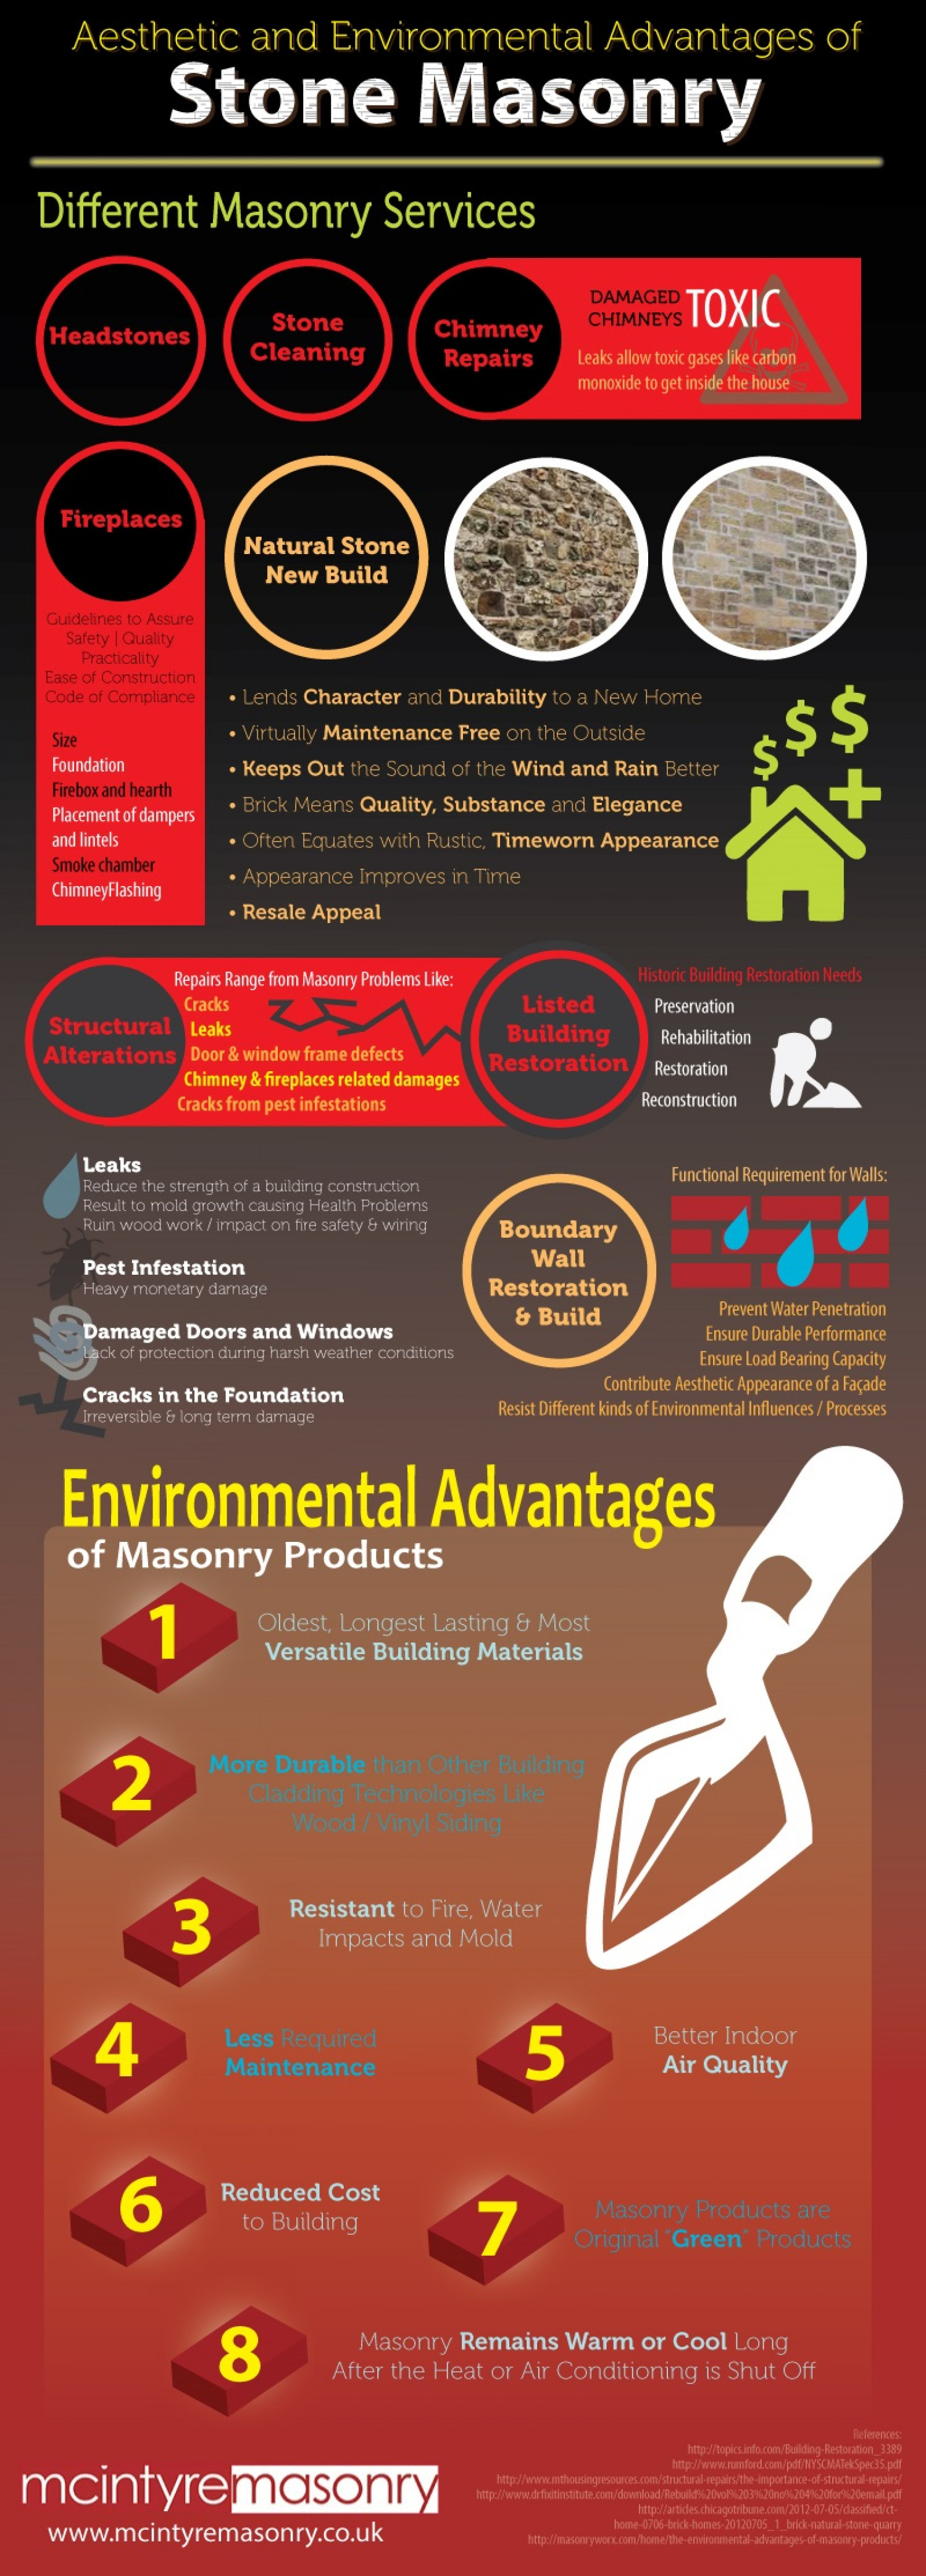 Aesthetic and Environmental Advantages of Stone Masonry Infographic